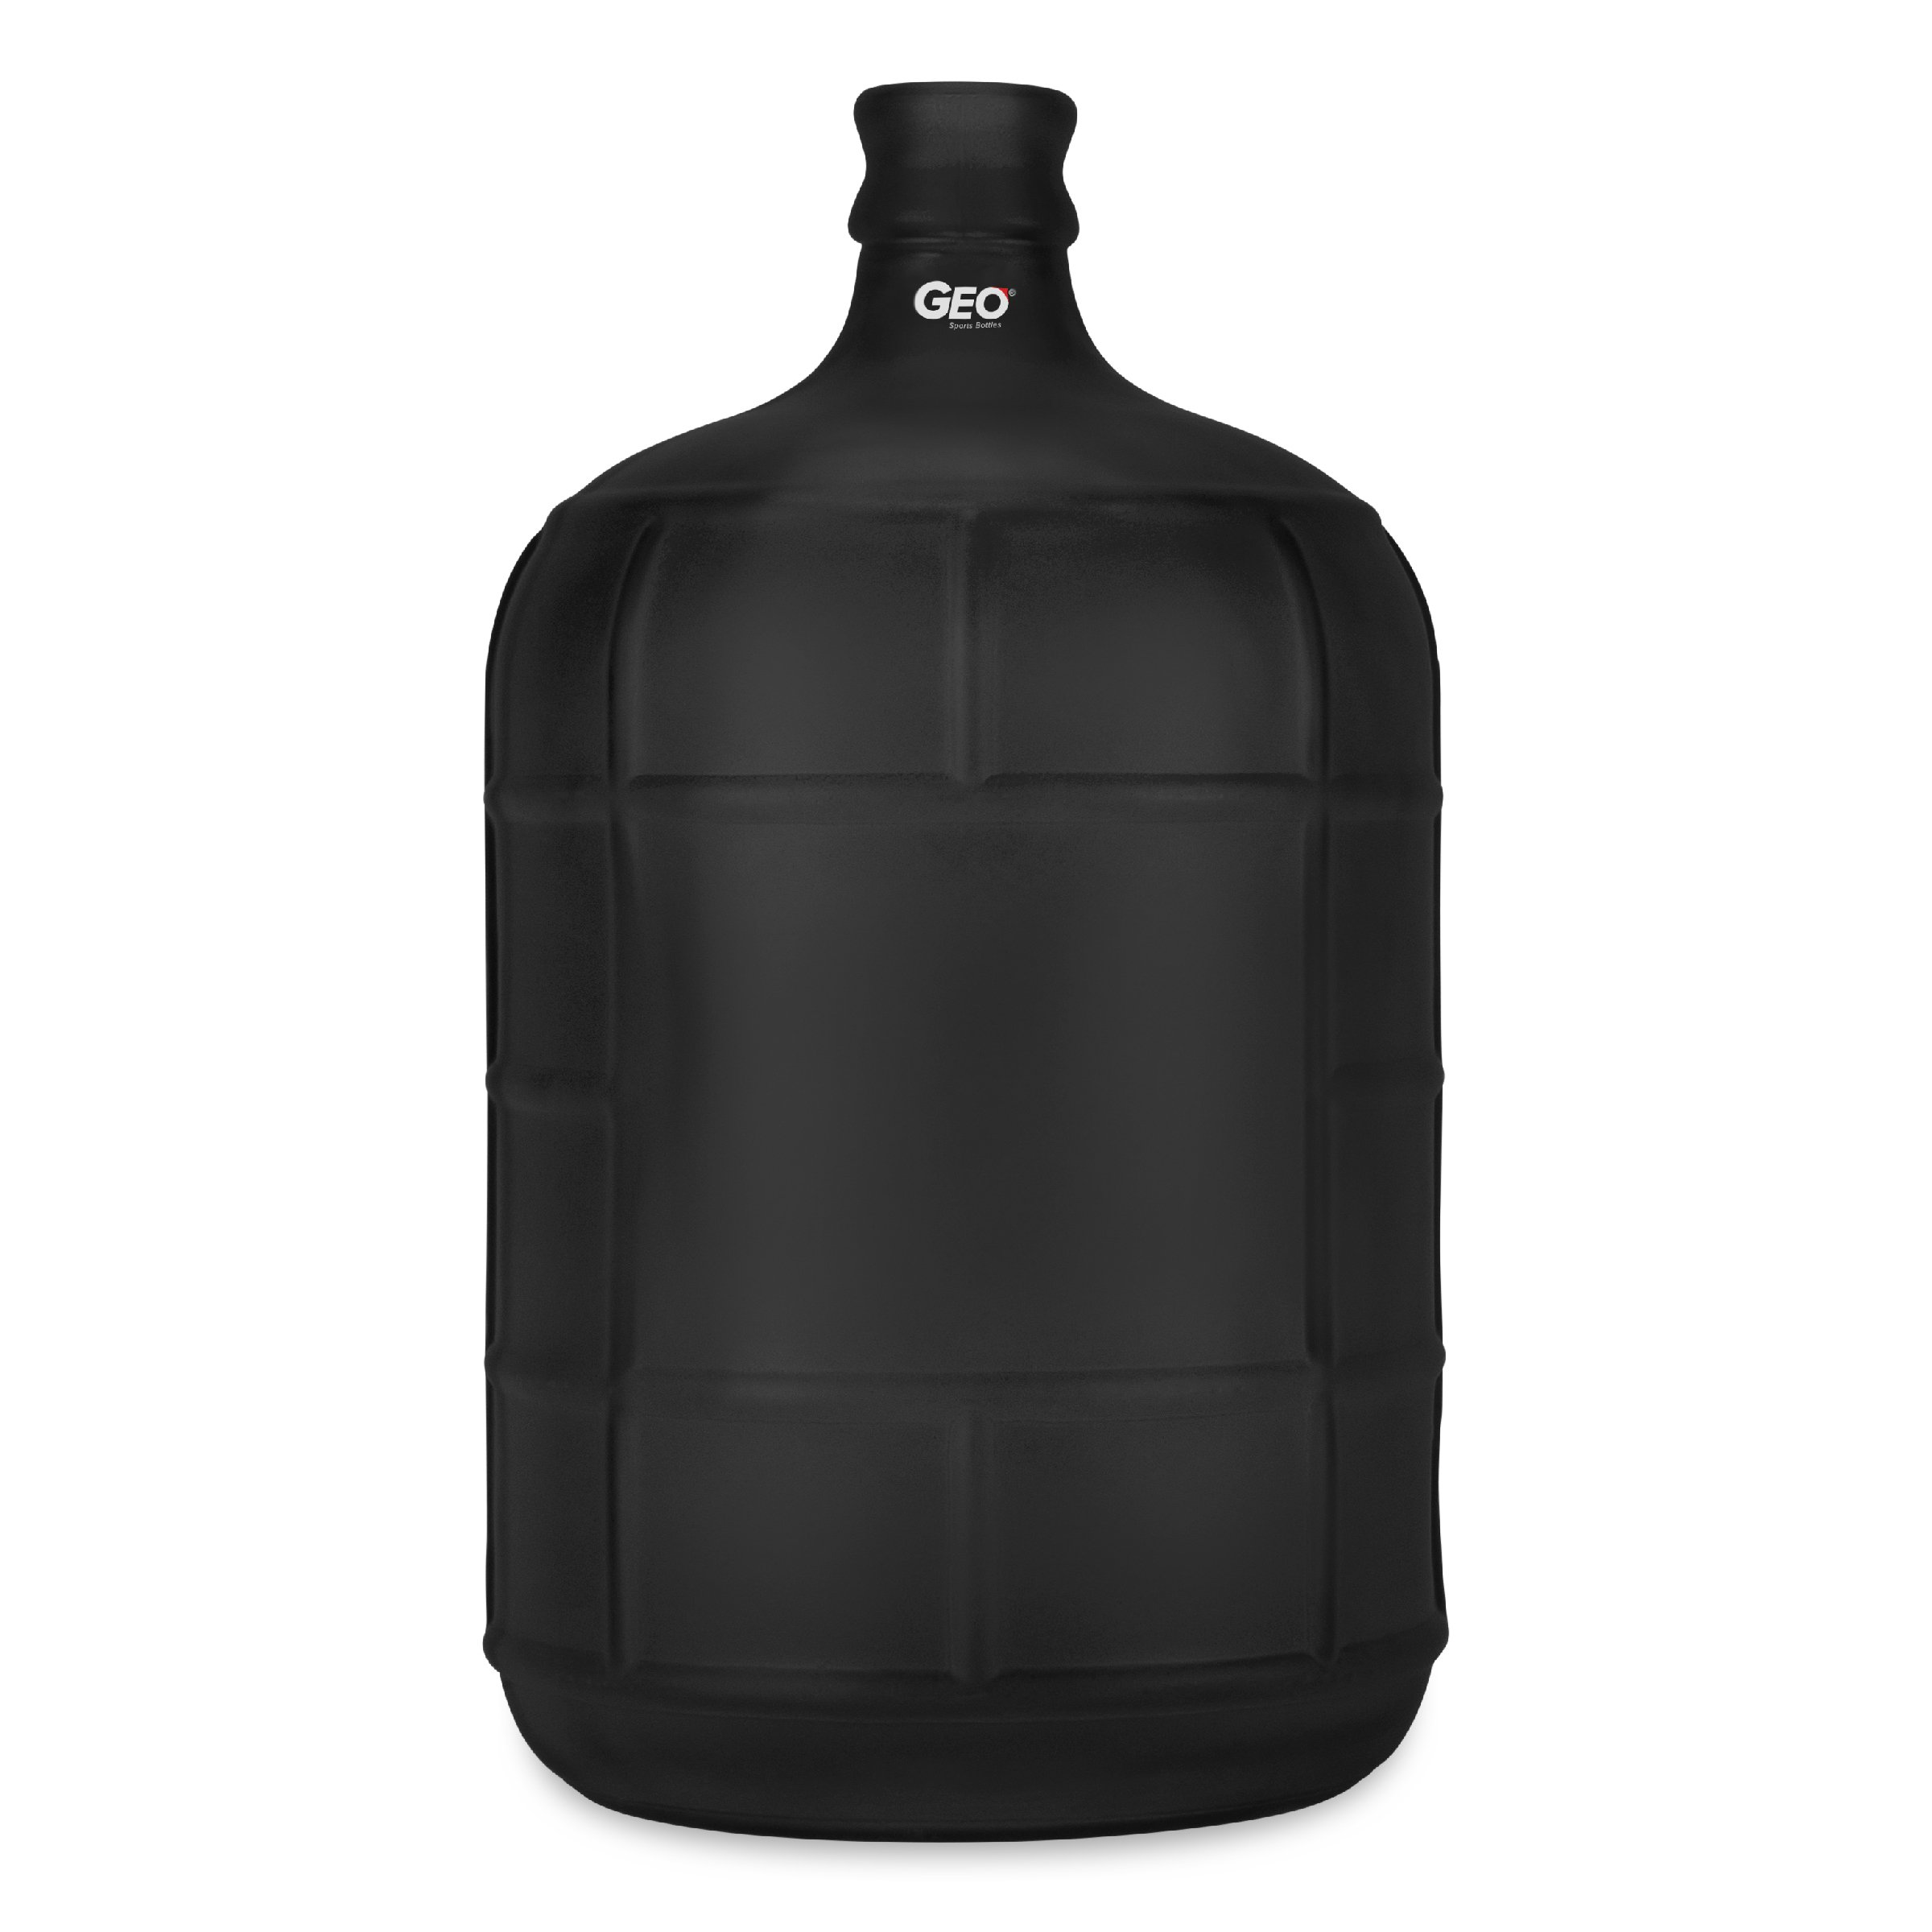 Geo Sports Bottles 3 Gallon Round Glass Carboy fits 30mm Cork Finish or 55mm Push Cap Home Brew (Frosted Black)